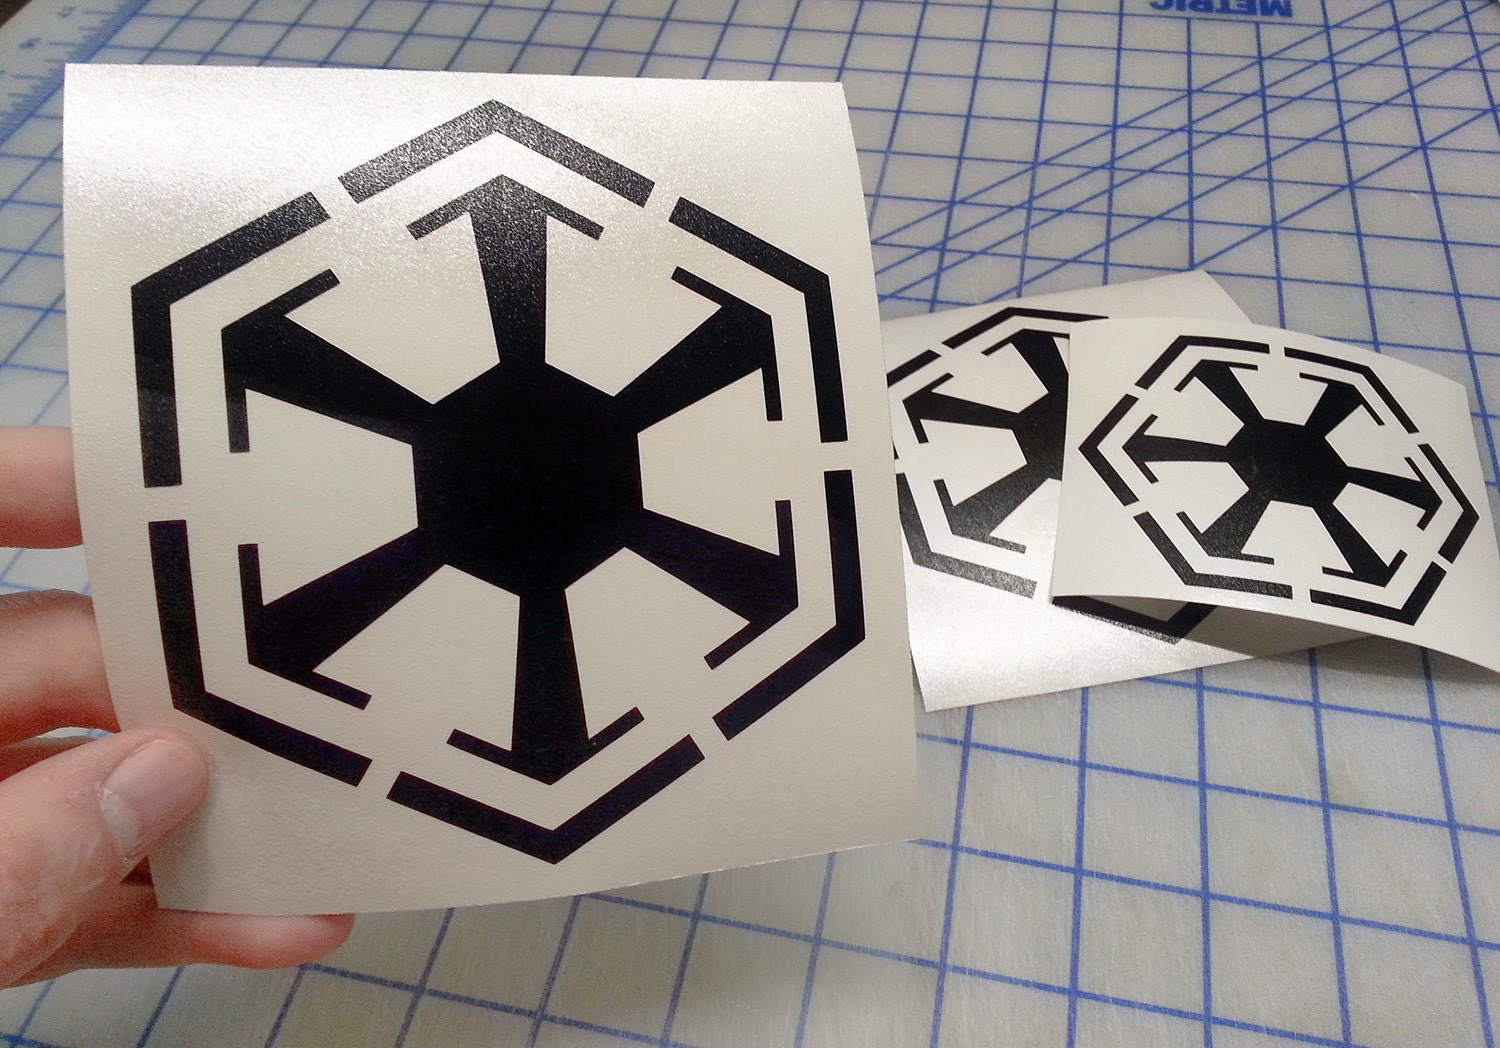 Star Wars Inspired Sith Decal Sith Logo Decal Sith